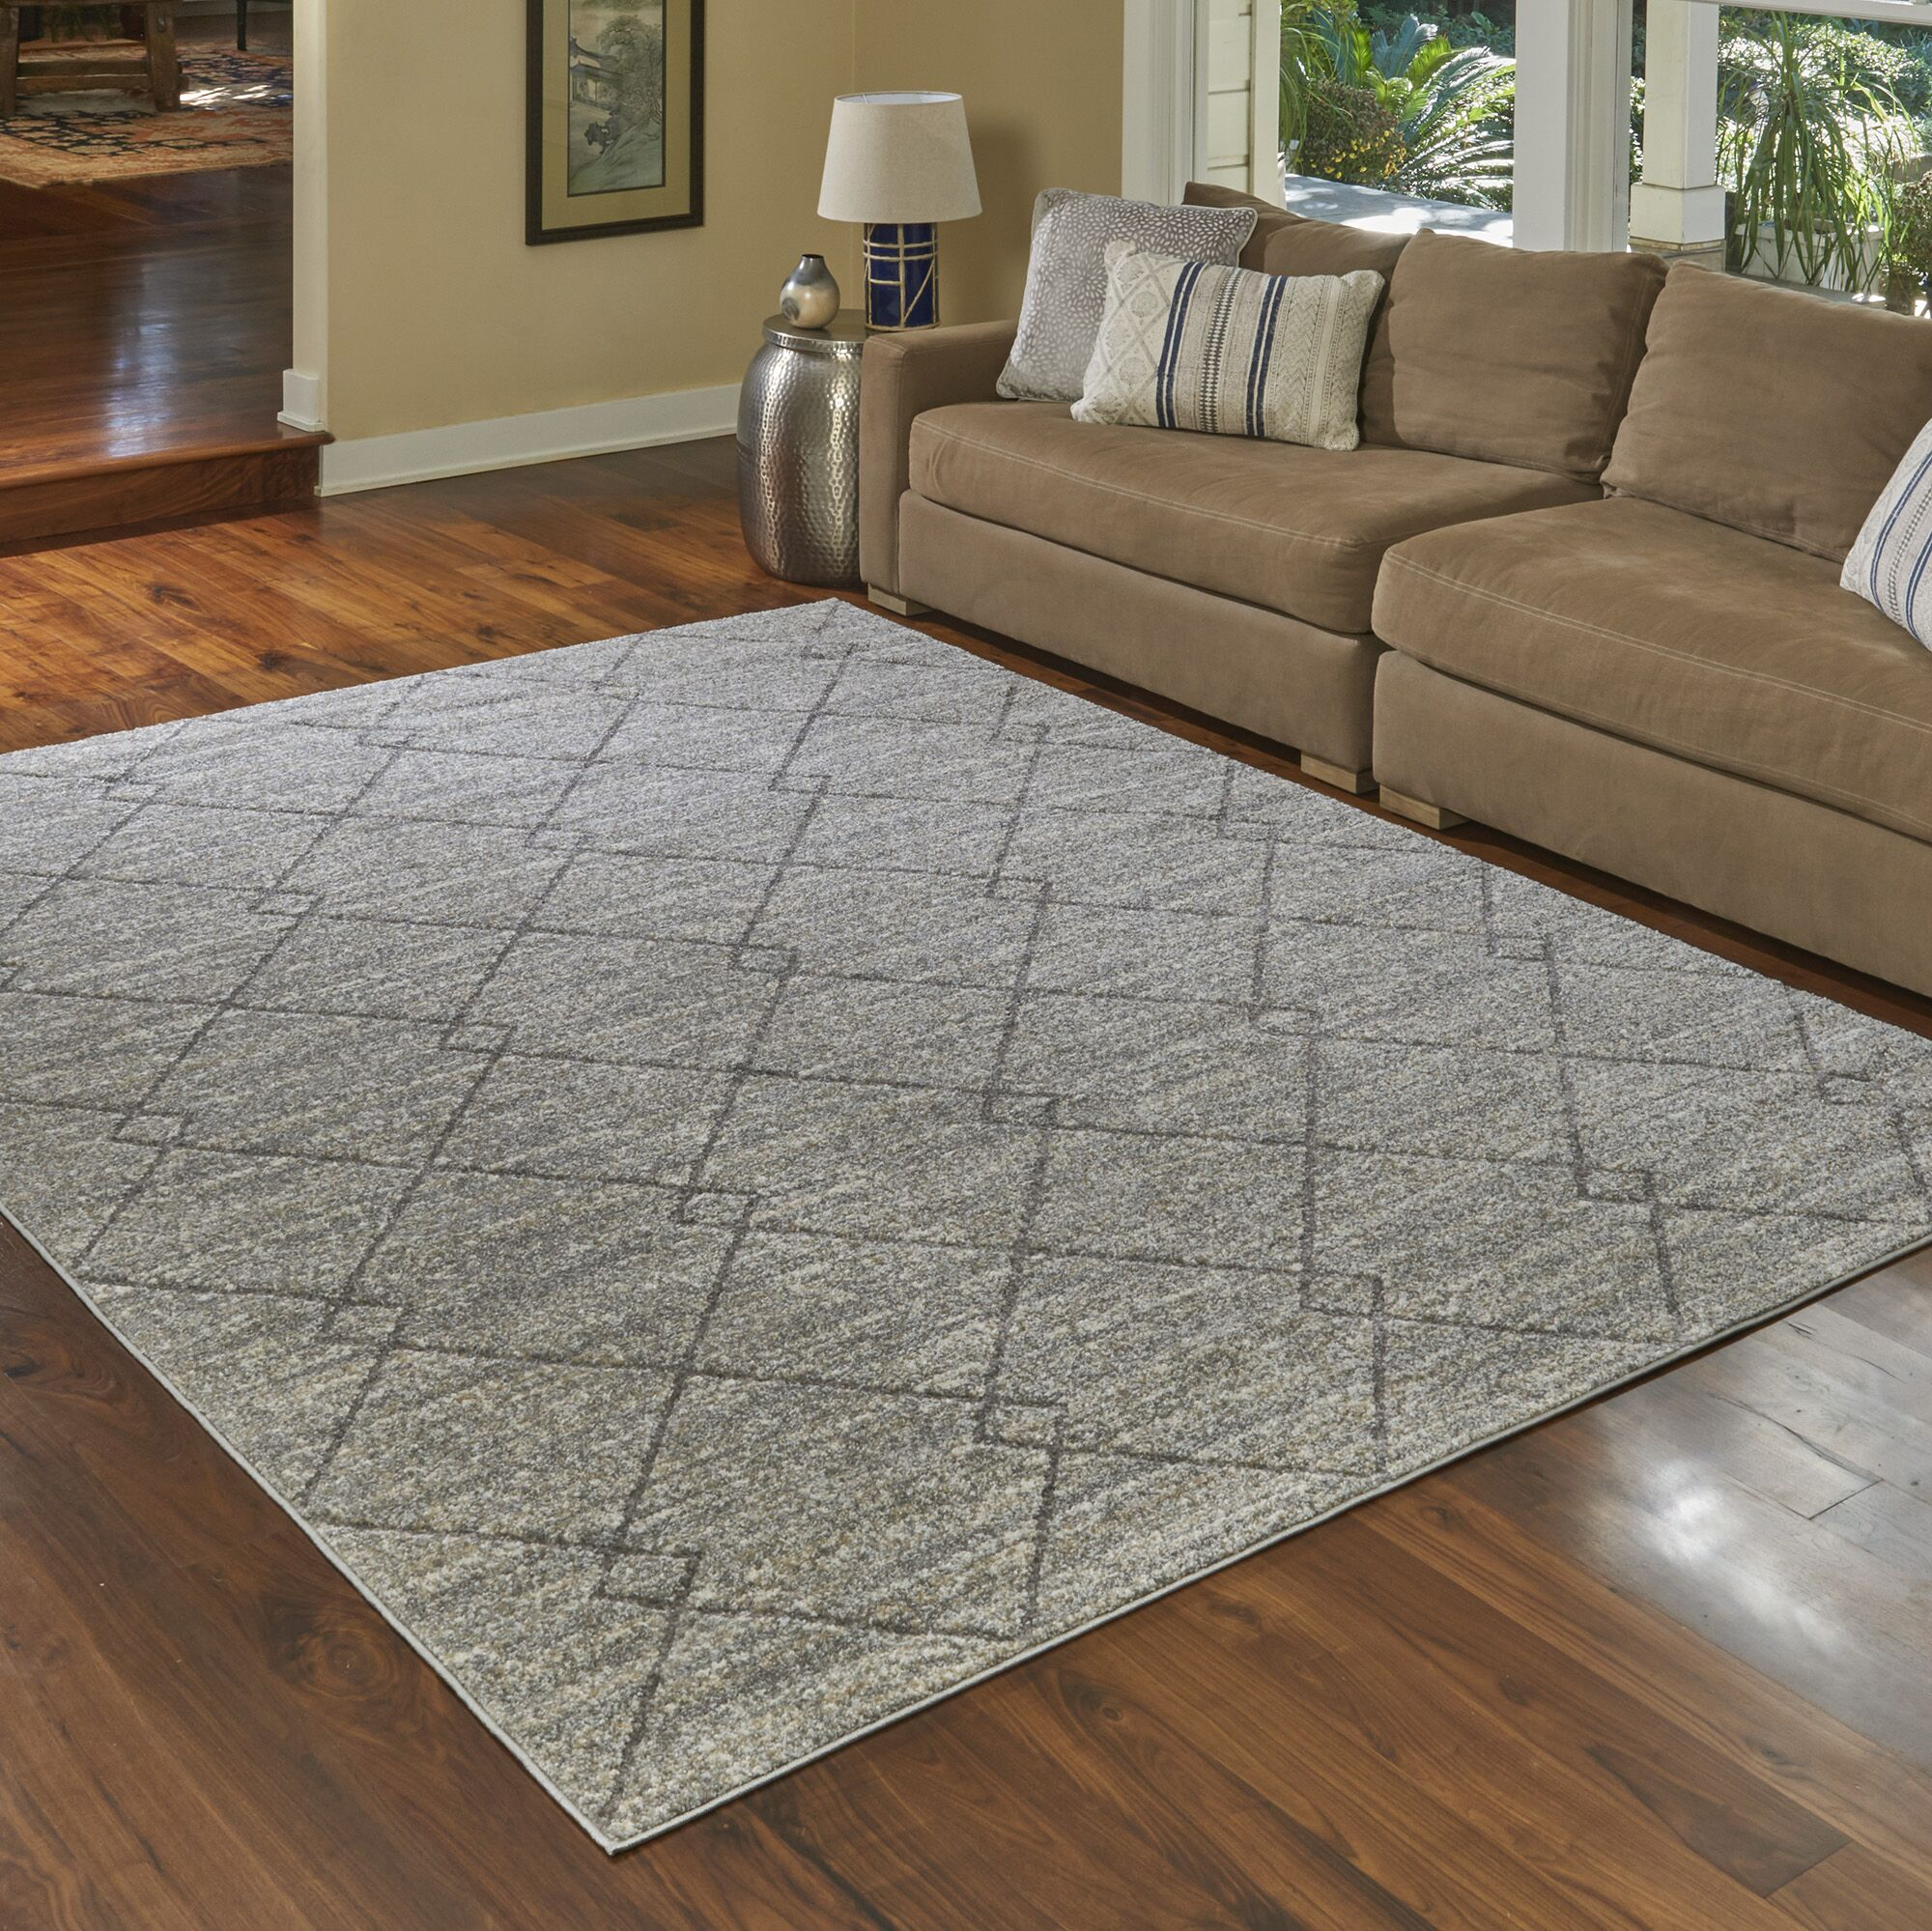 Seaview New Style Gray Area Rug Rug Size: Rectangle 5'3